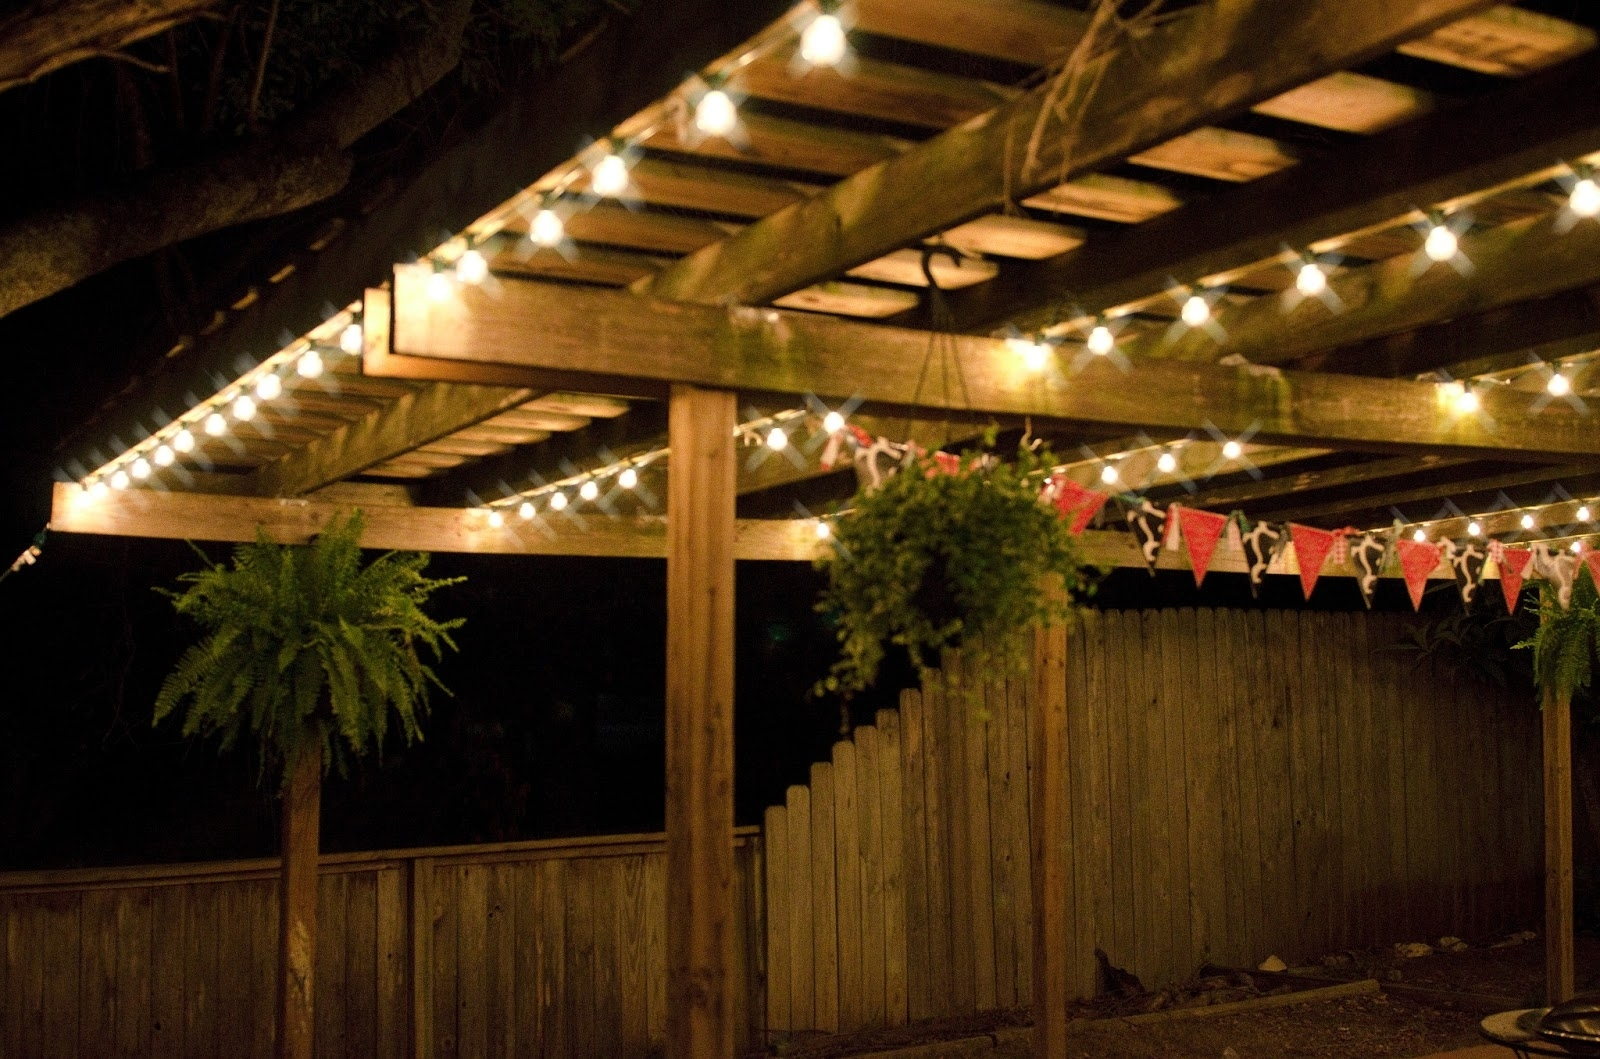 Amazing Of Hanging Patio Lights How To Hang String With Light Ideas With Outdoor Hanging String Lanterns (View 5 of 15)